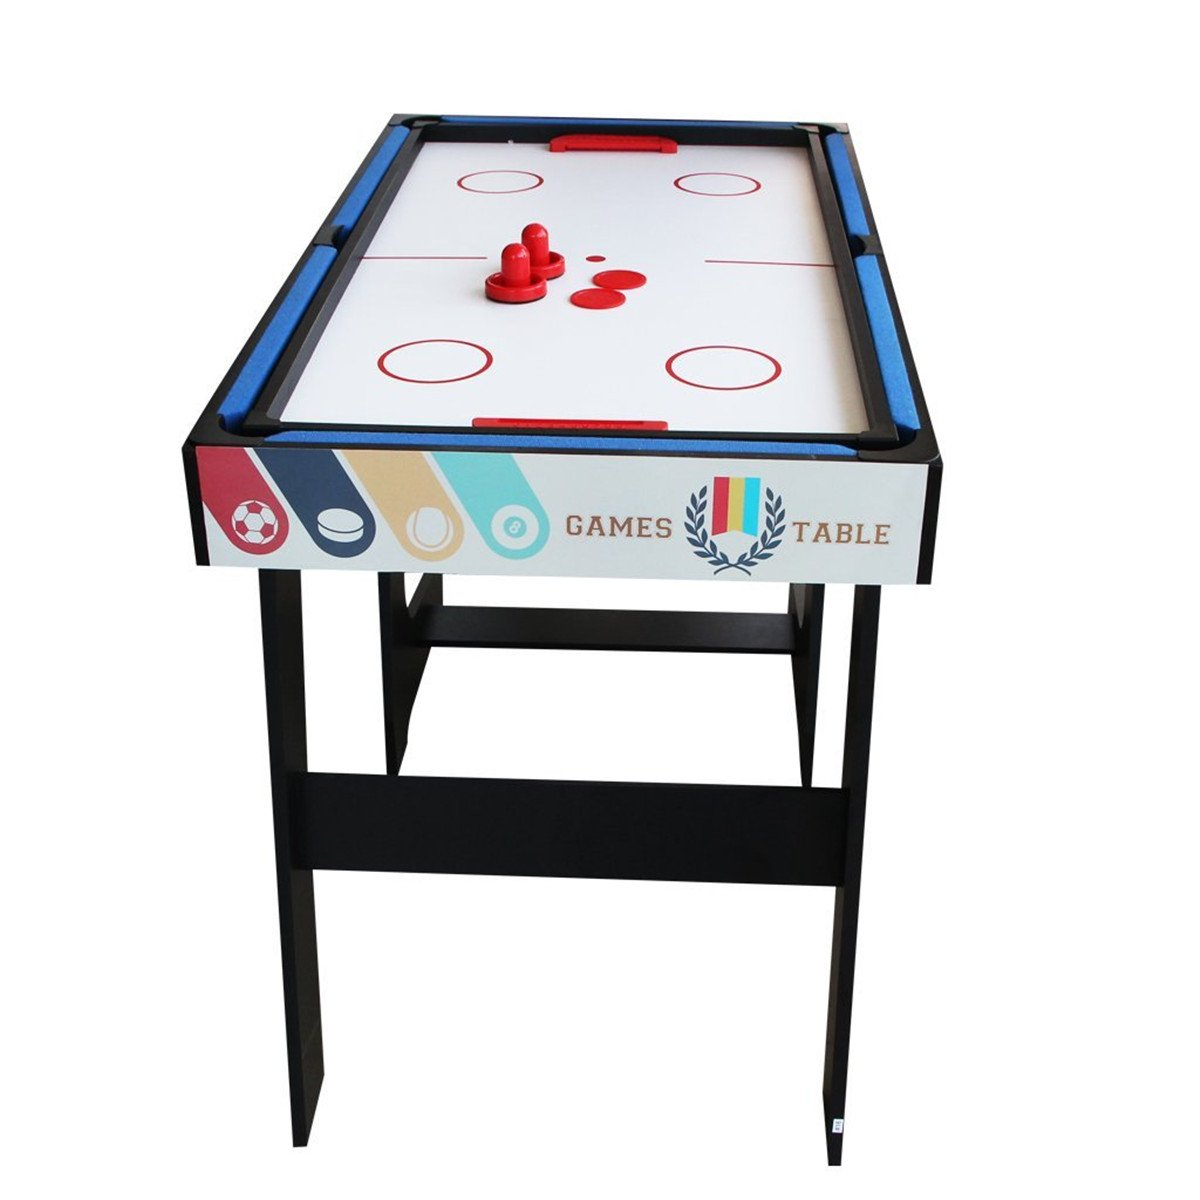 Deluxe 5 in 1 Top Game Table Folding Table-Table Tennis,Glide Hockey,Chess,Pool,Basketball Set by QYBK (Image #5)